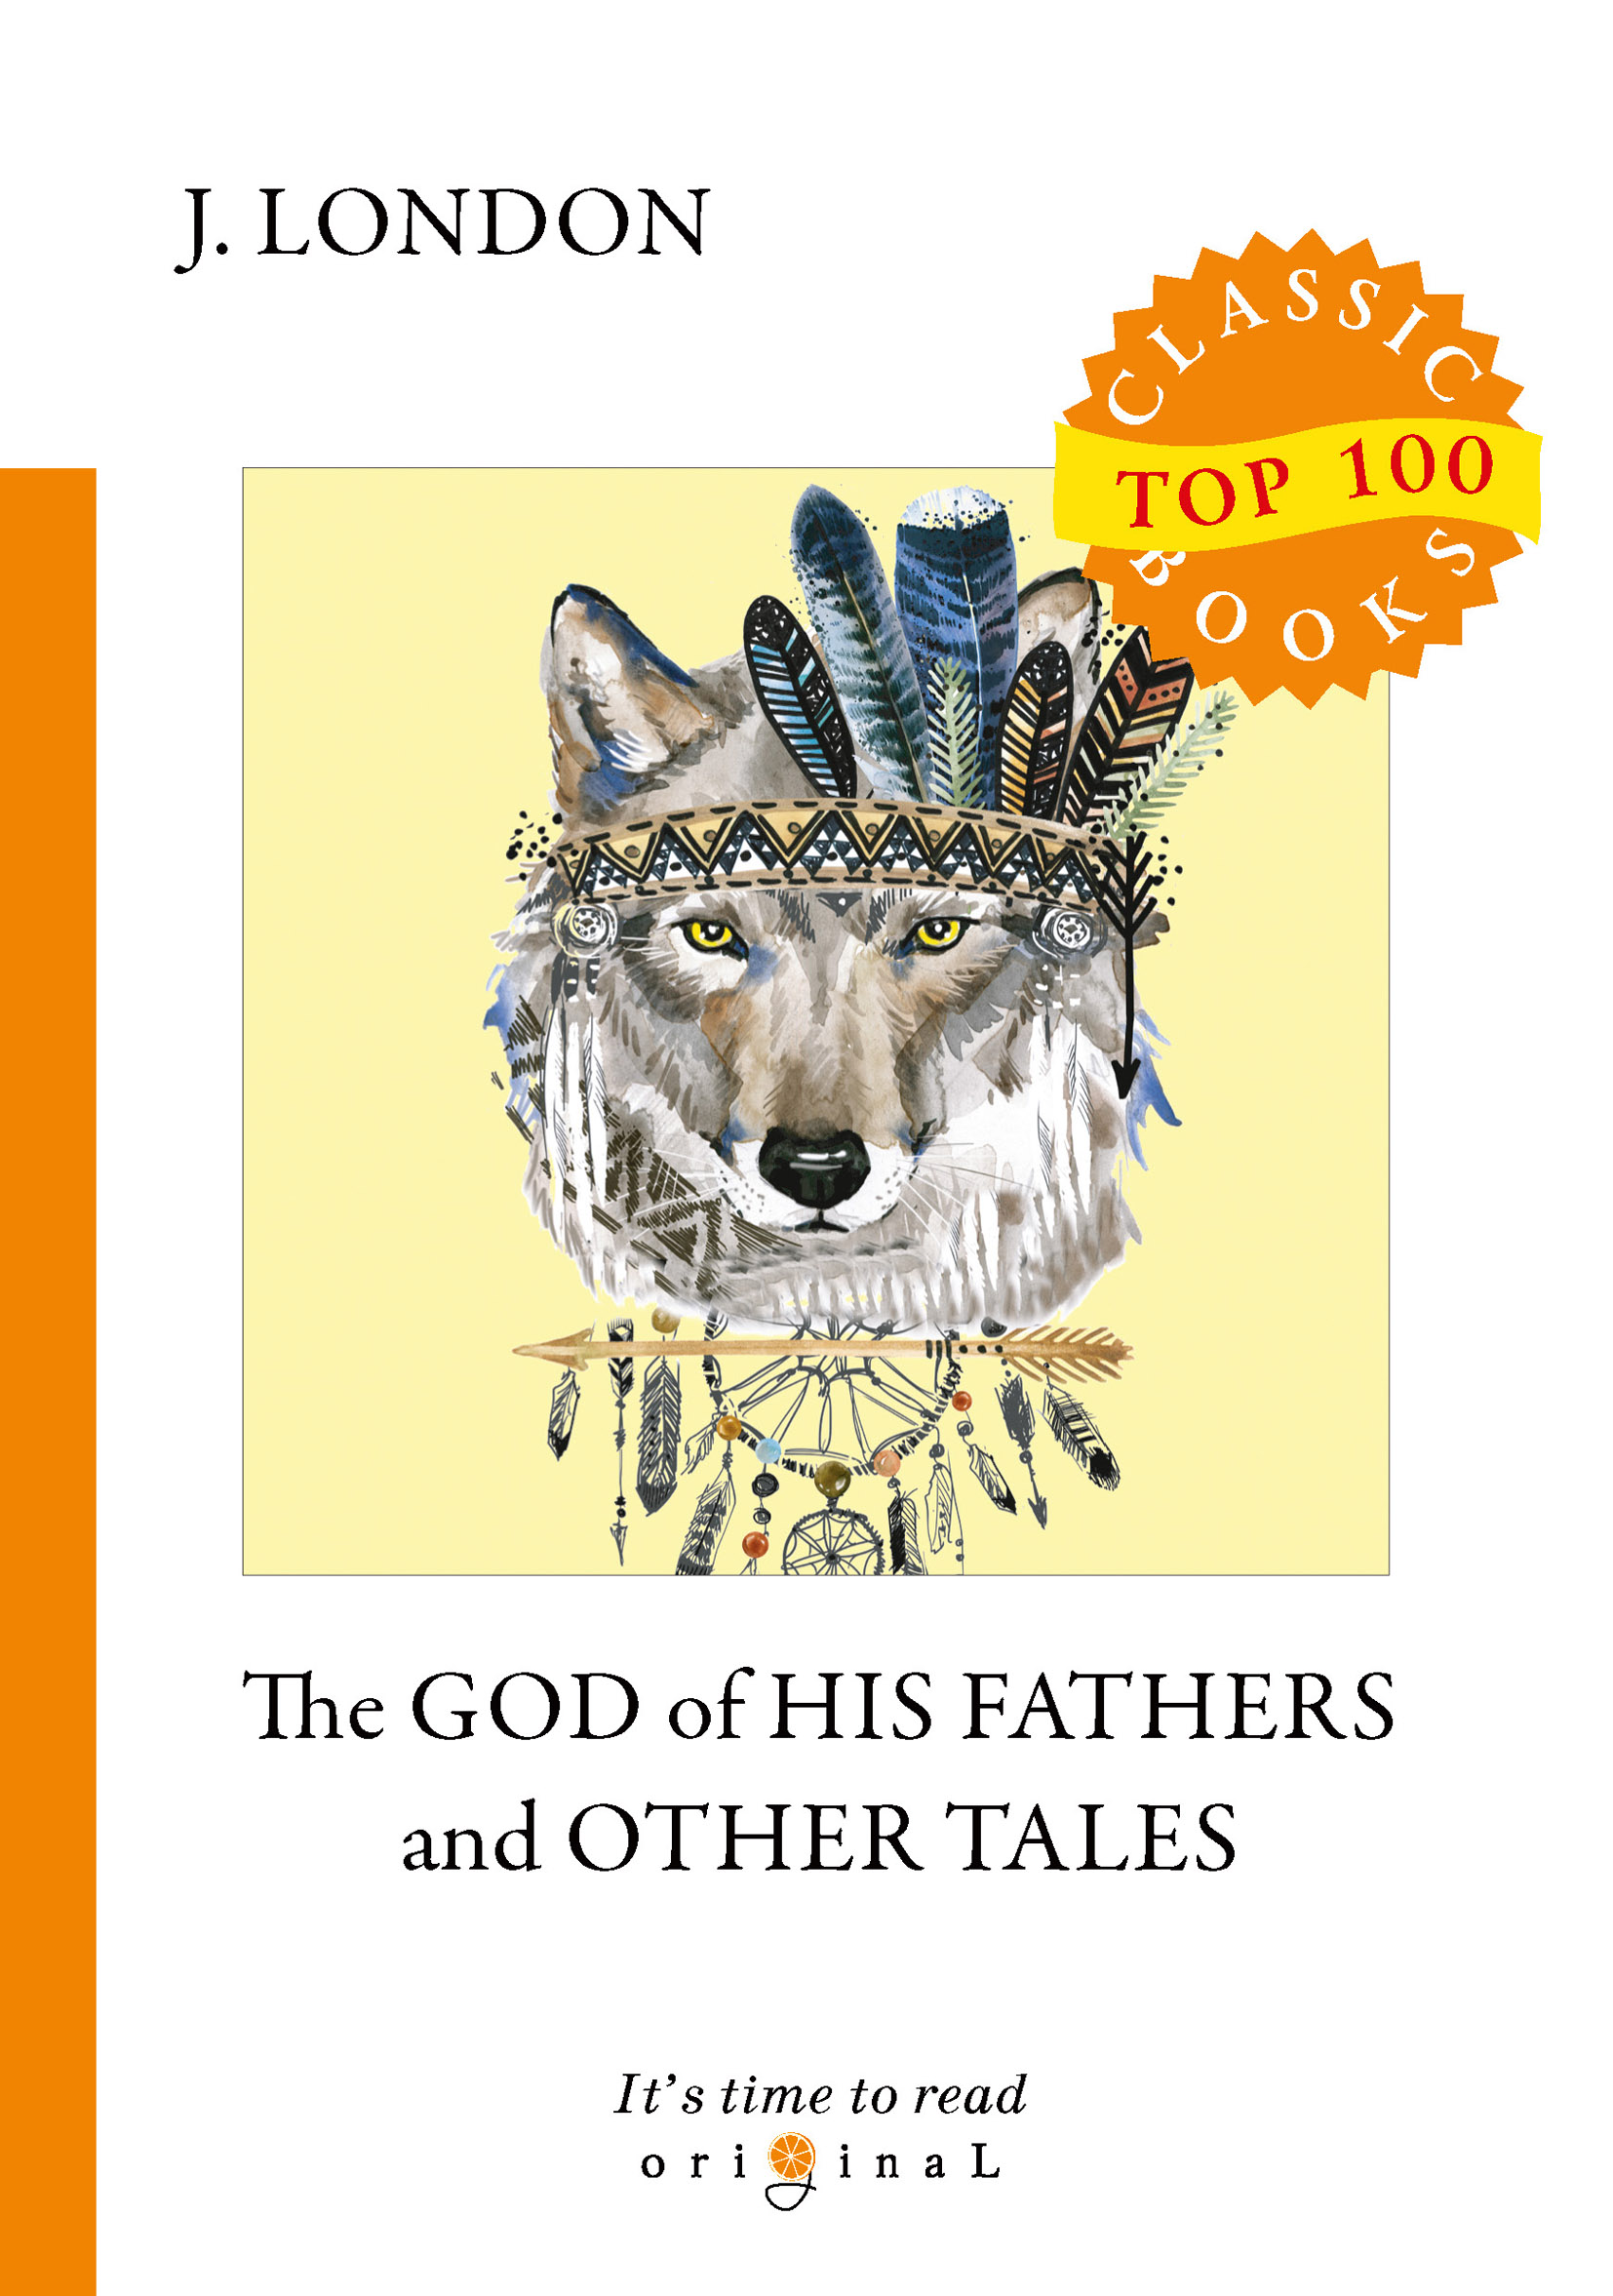 London J. The God of His Fathers and Other Tales карандаш графитовый bic 180093 evolution 175 мм